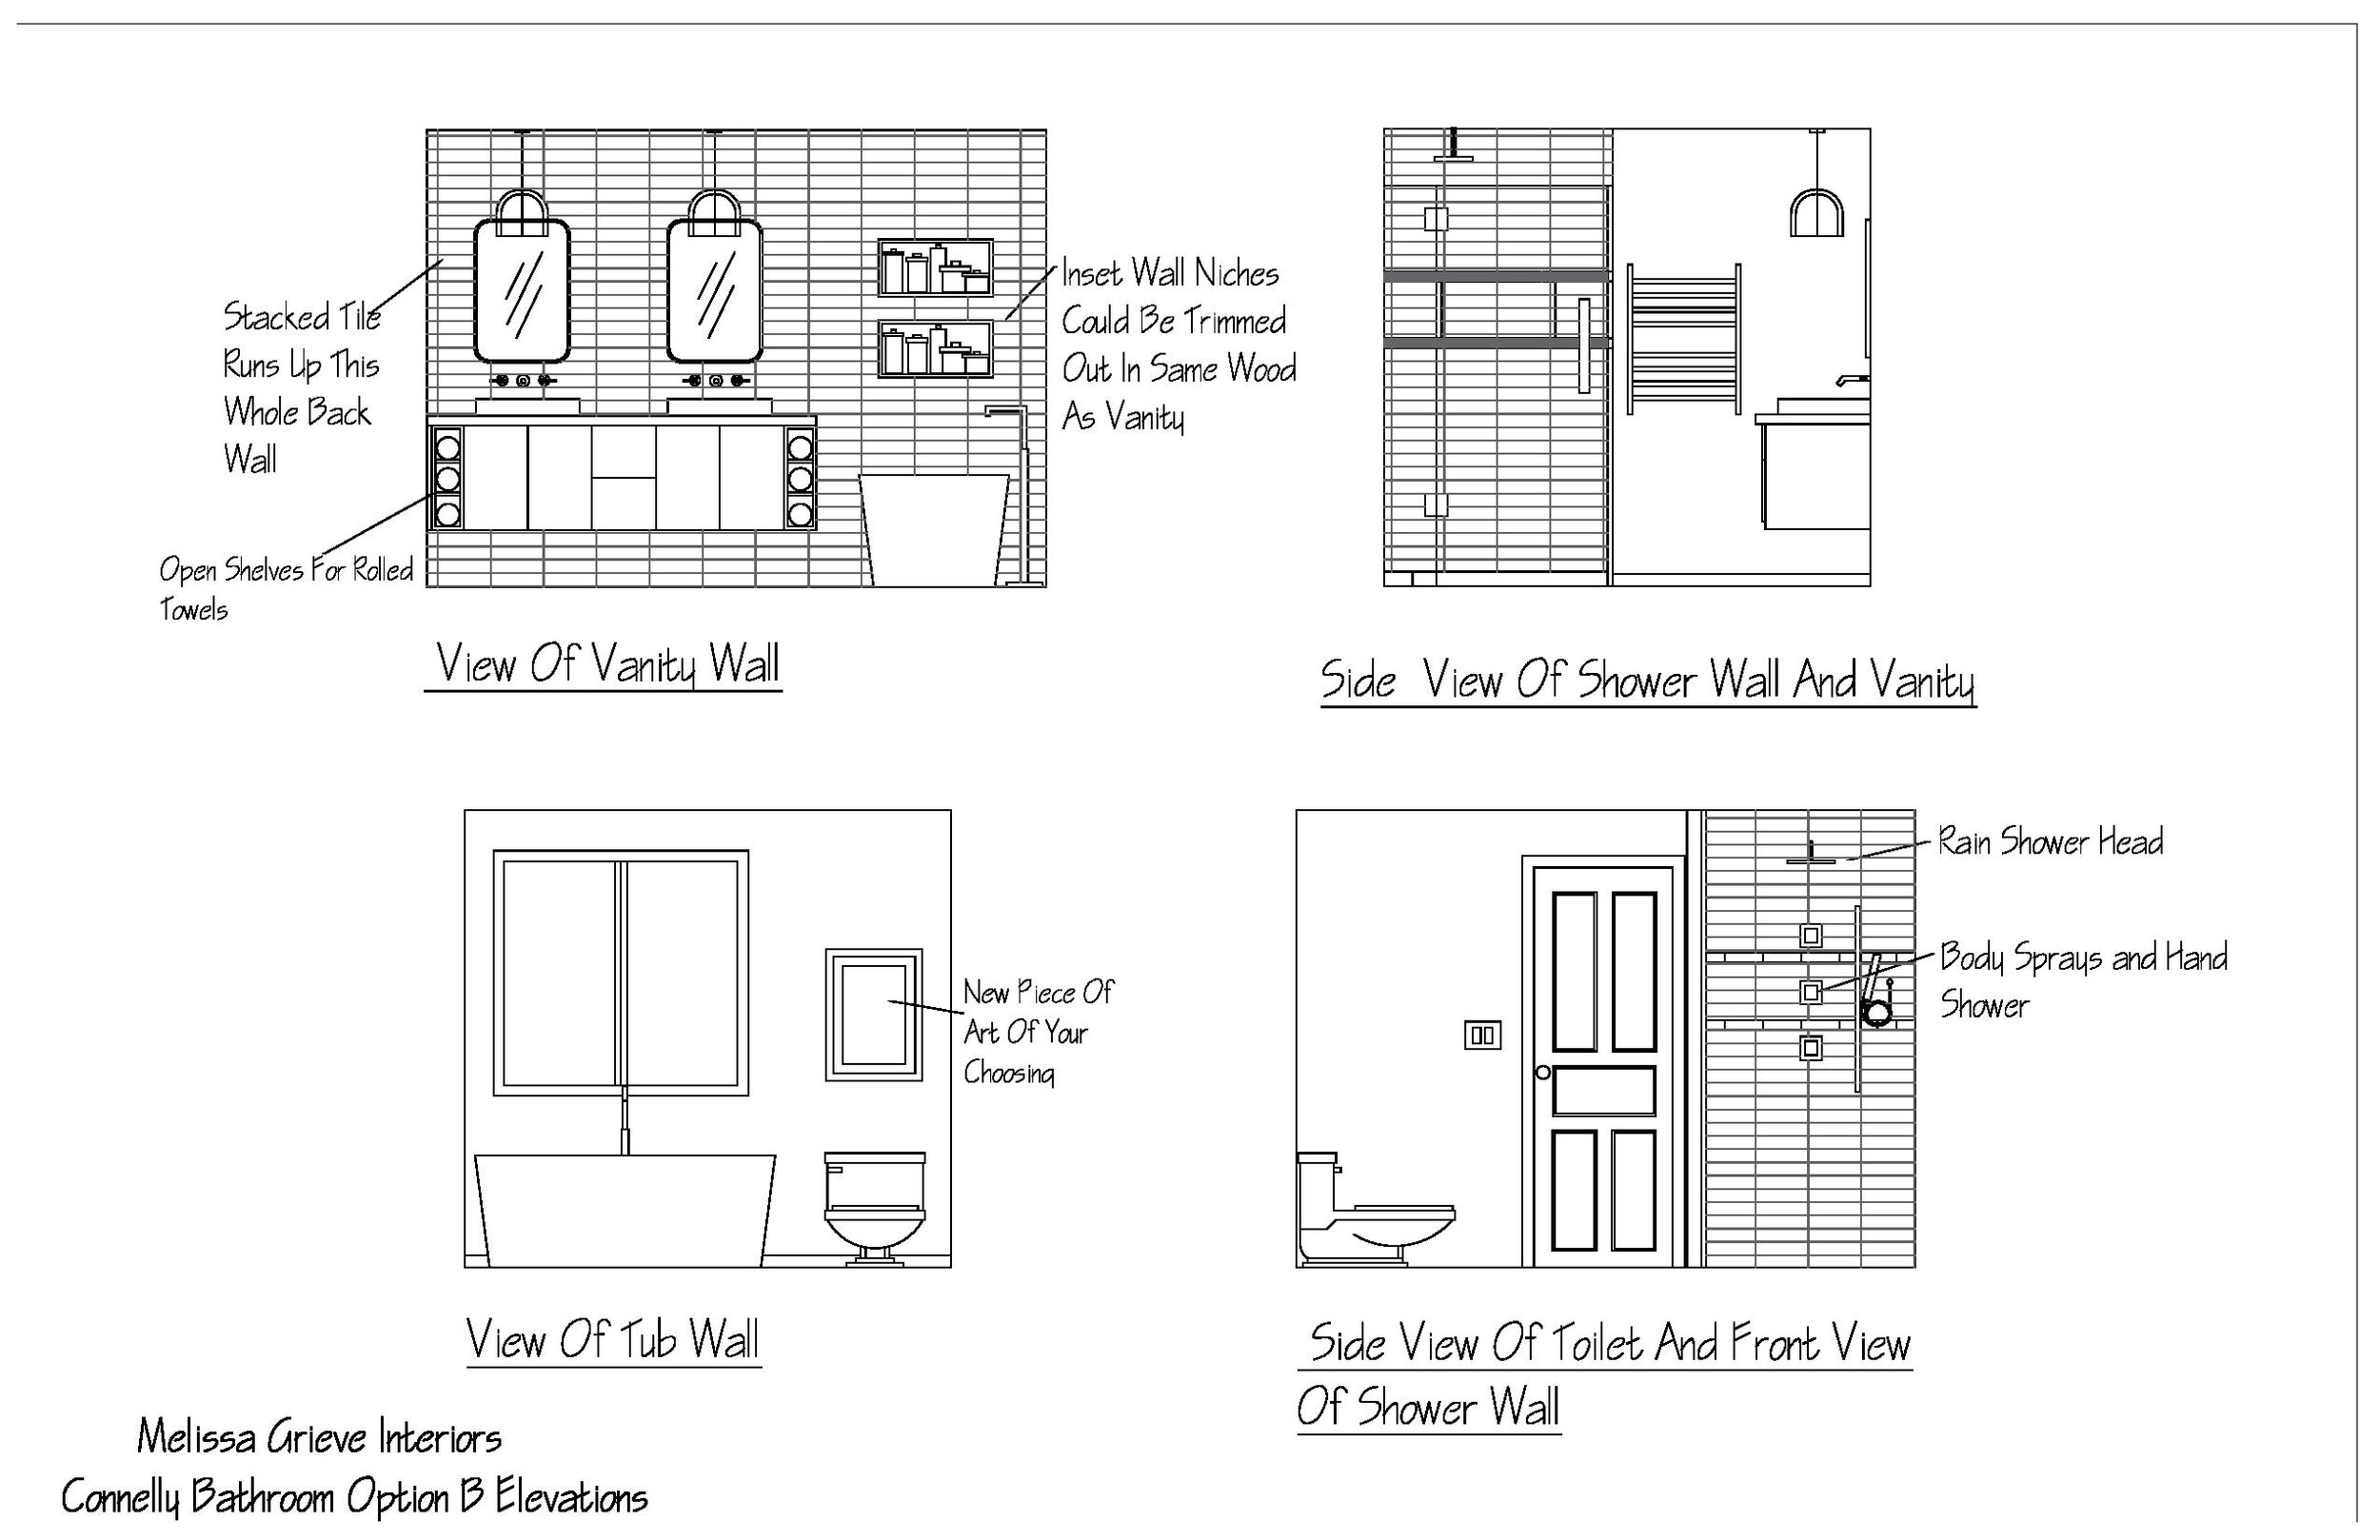 Connelly+Bathroom+Option+B+Elevations+Revised-page-001 (1).jpg